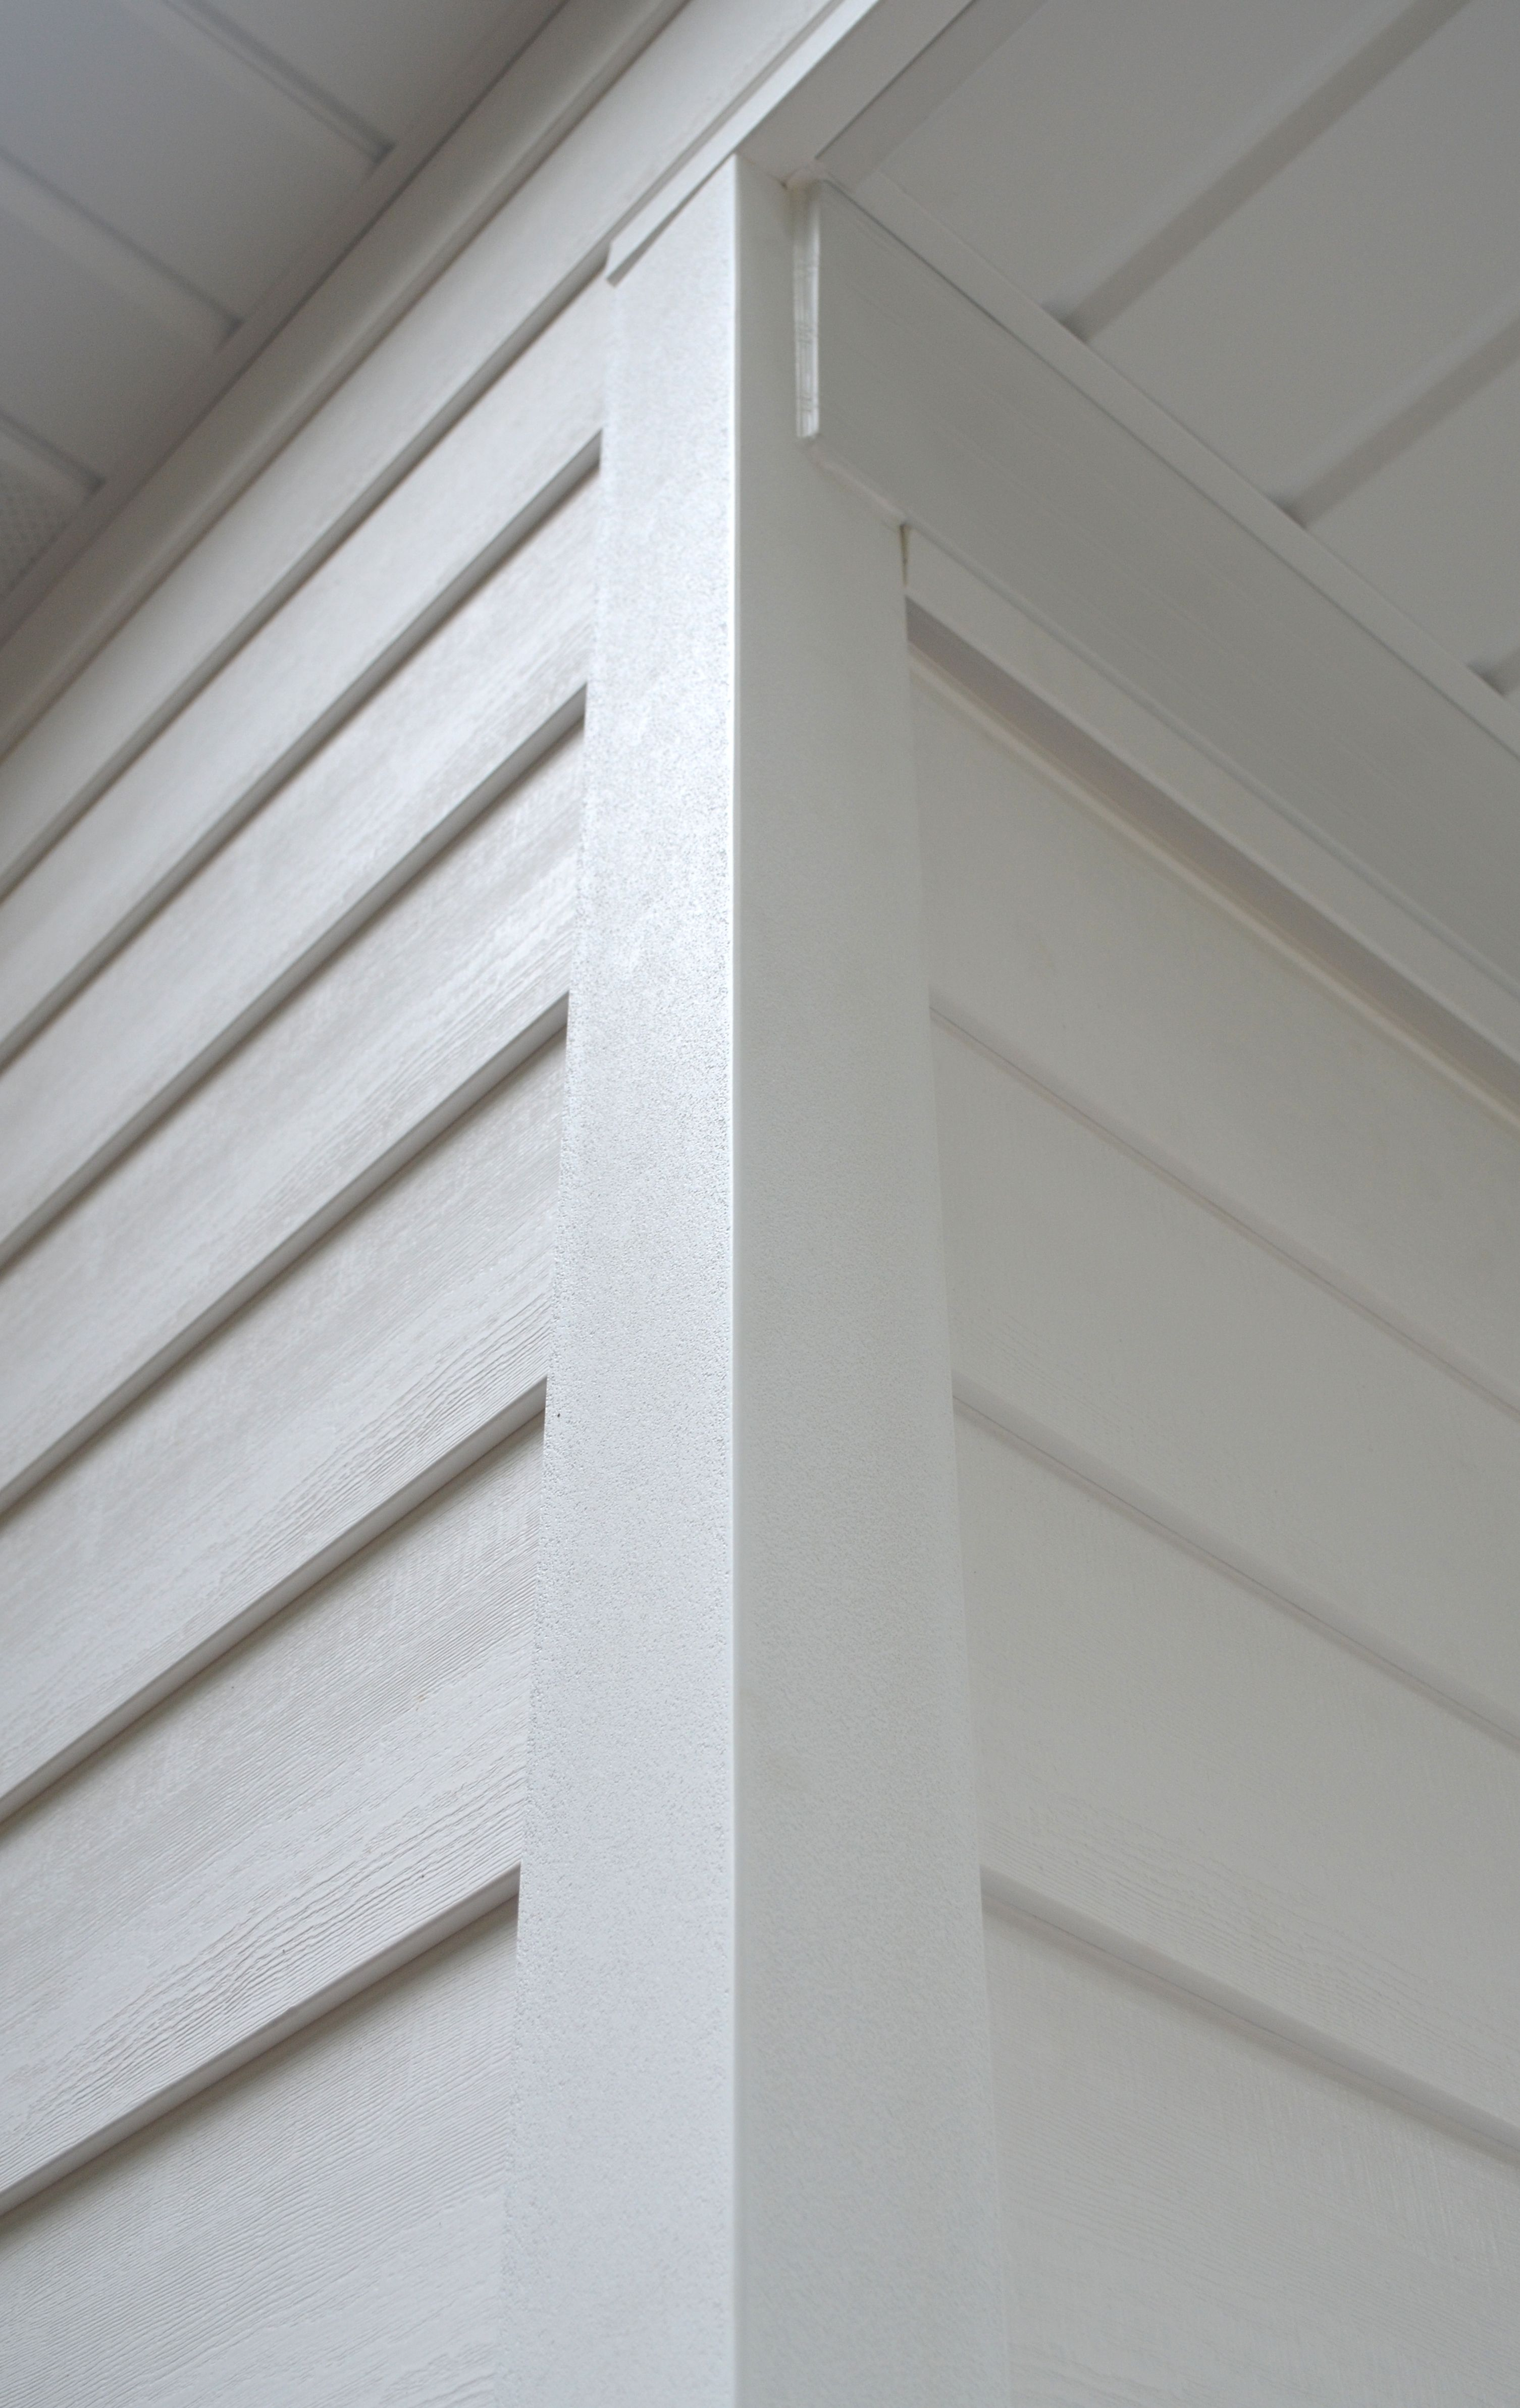 Everlast Polymeric Cladding Trim Collection Is Right For Every Home Get Yours Today At Www Everlastsiding Com Cladding Composite Siding Fiber Cement Siding